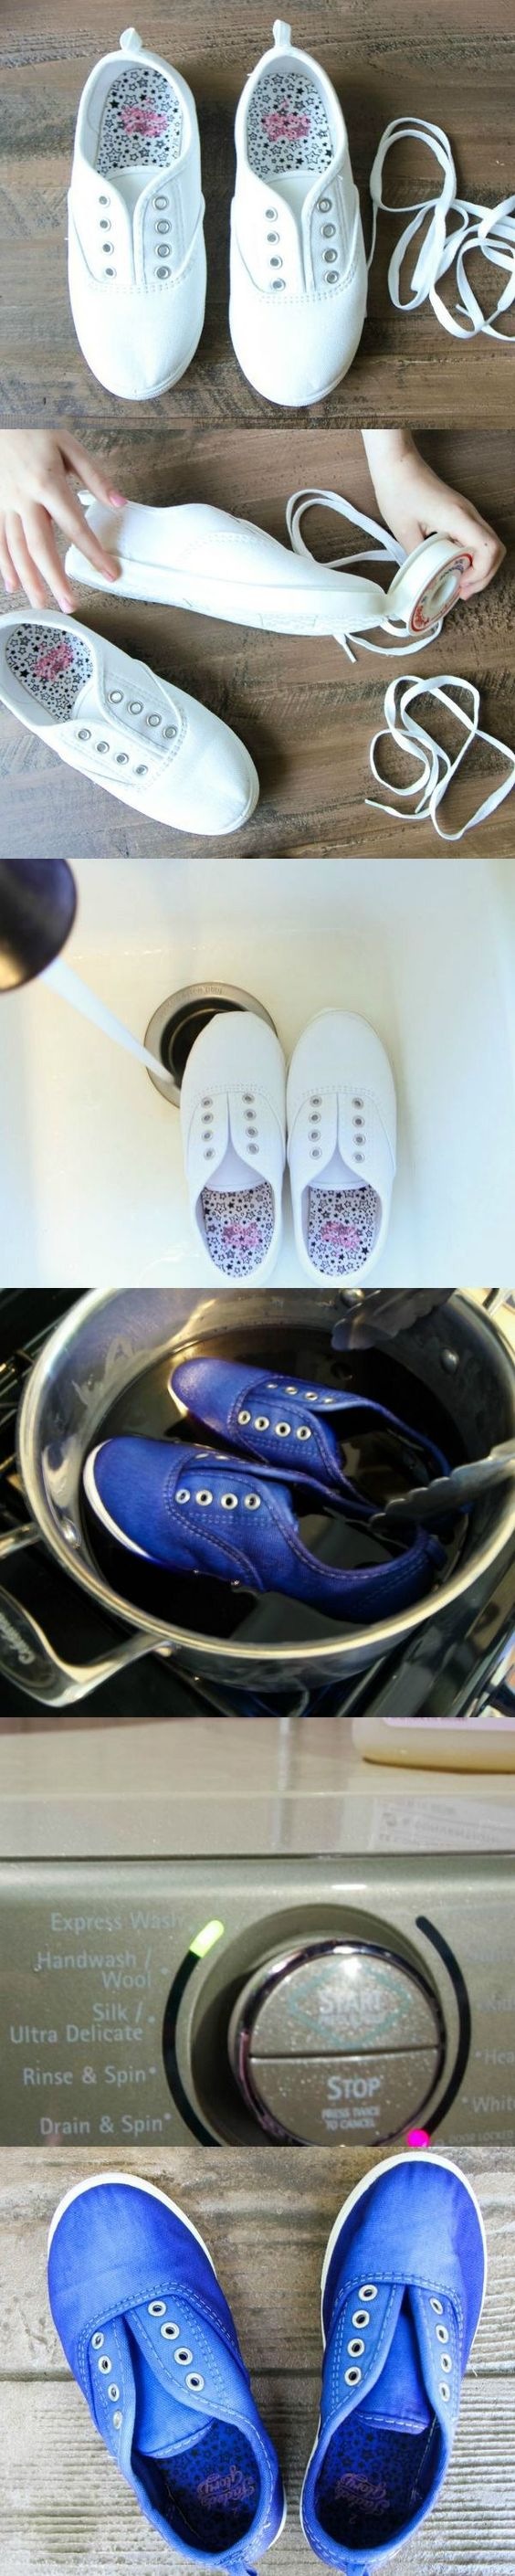 how to use rit dye on shoes